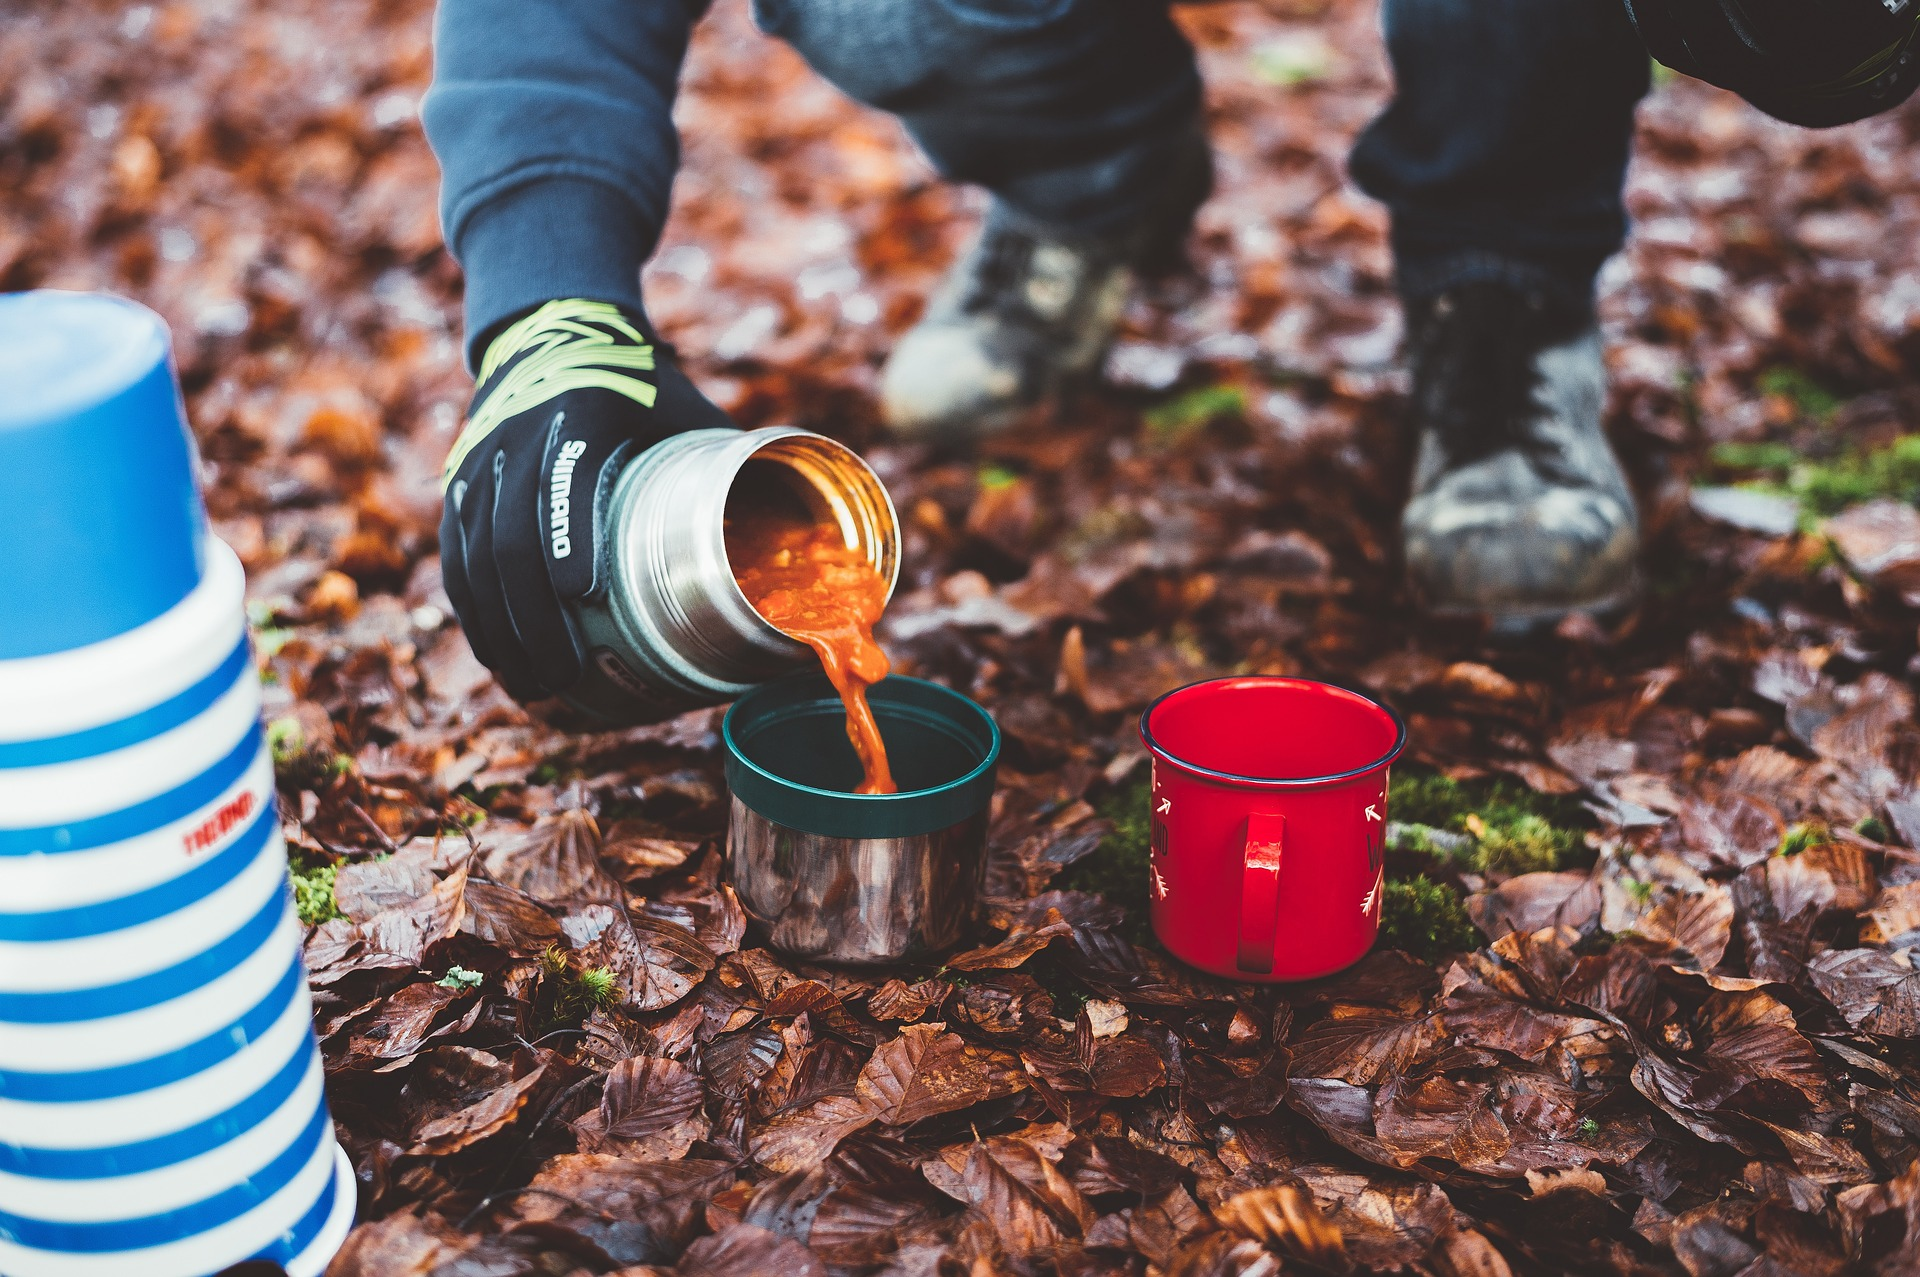 camping food stew thermos cooking pixabay